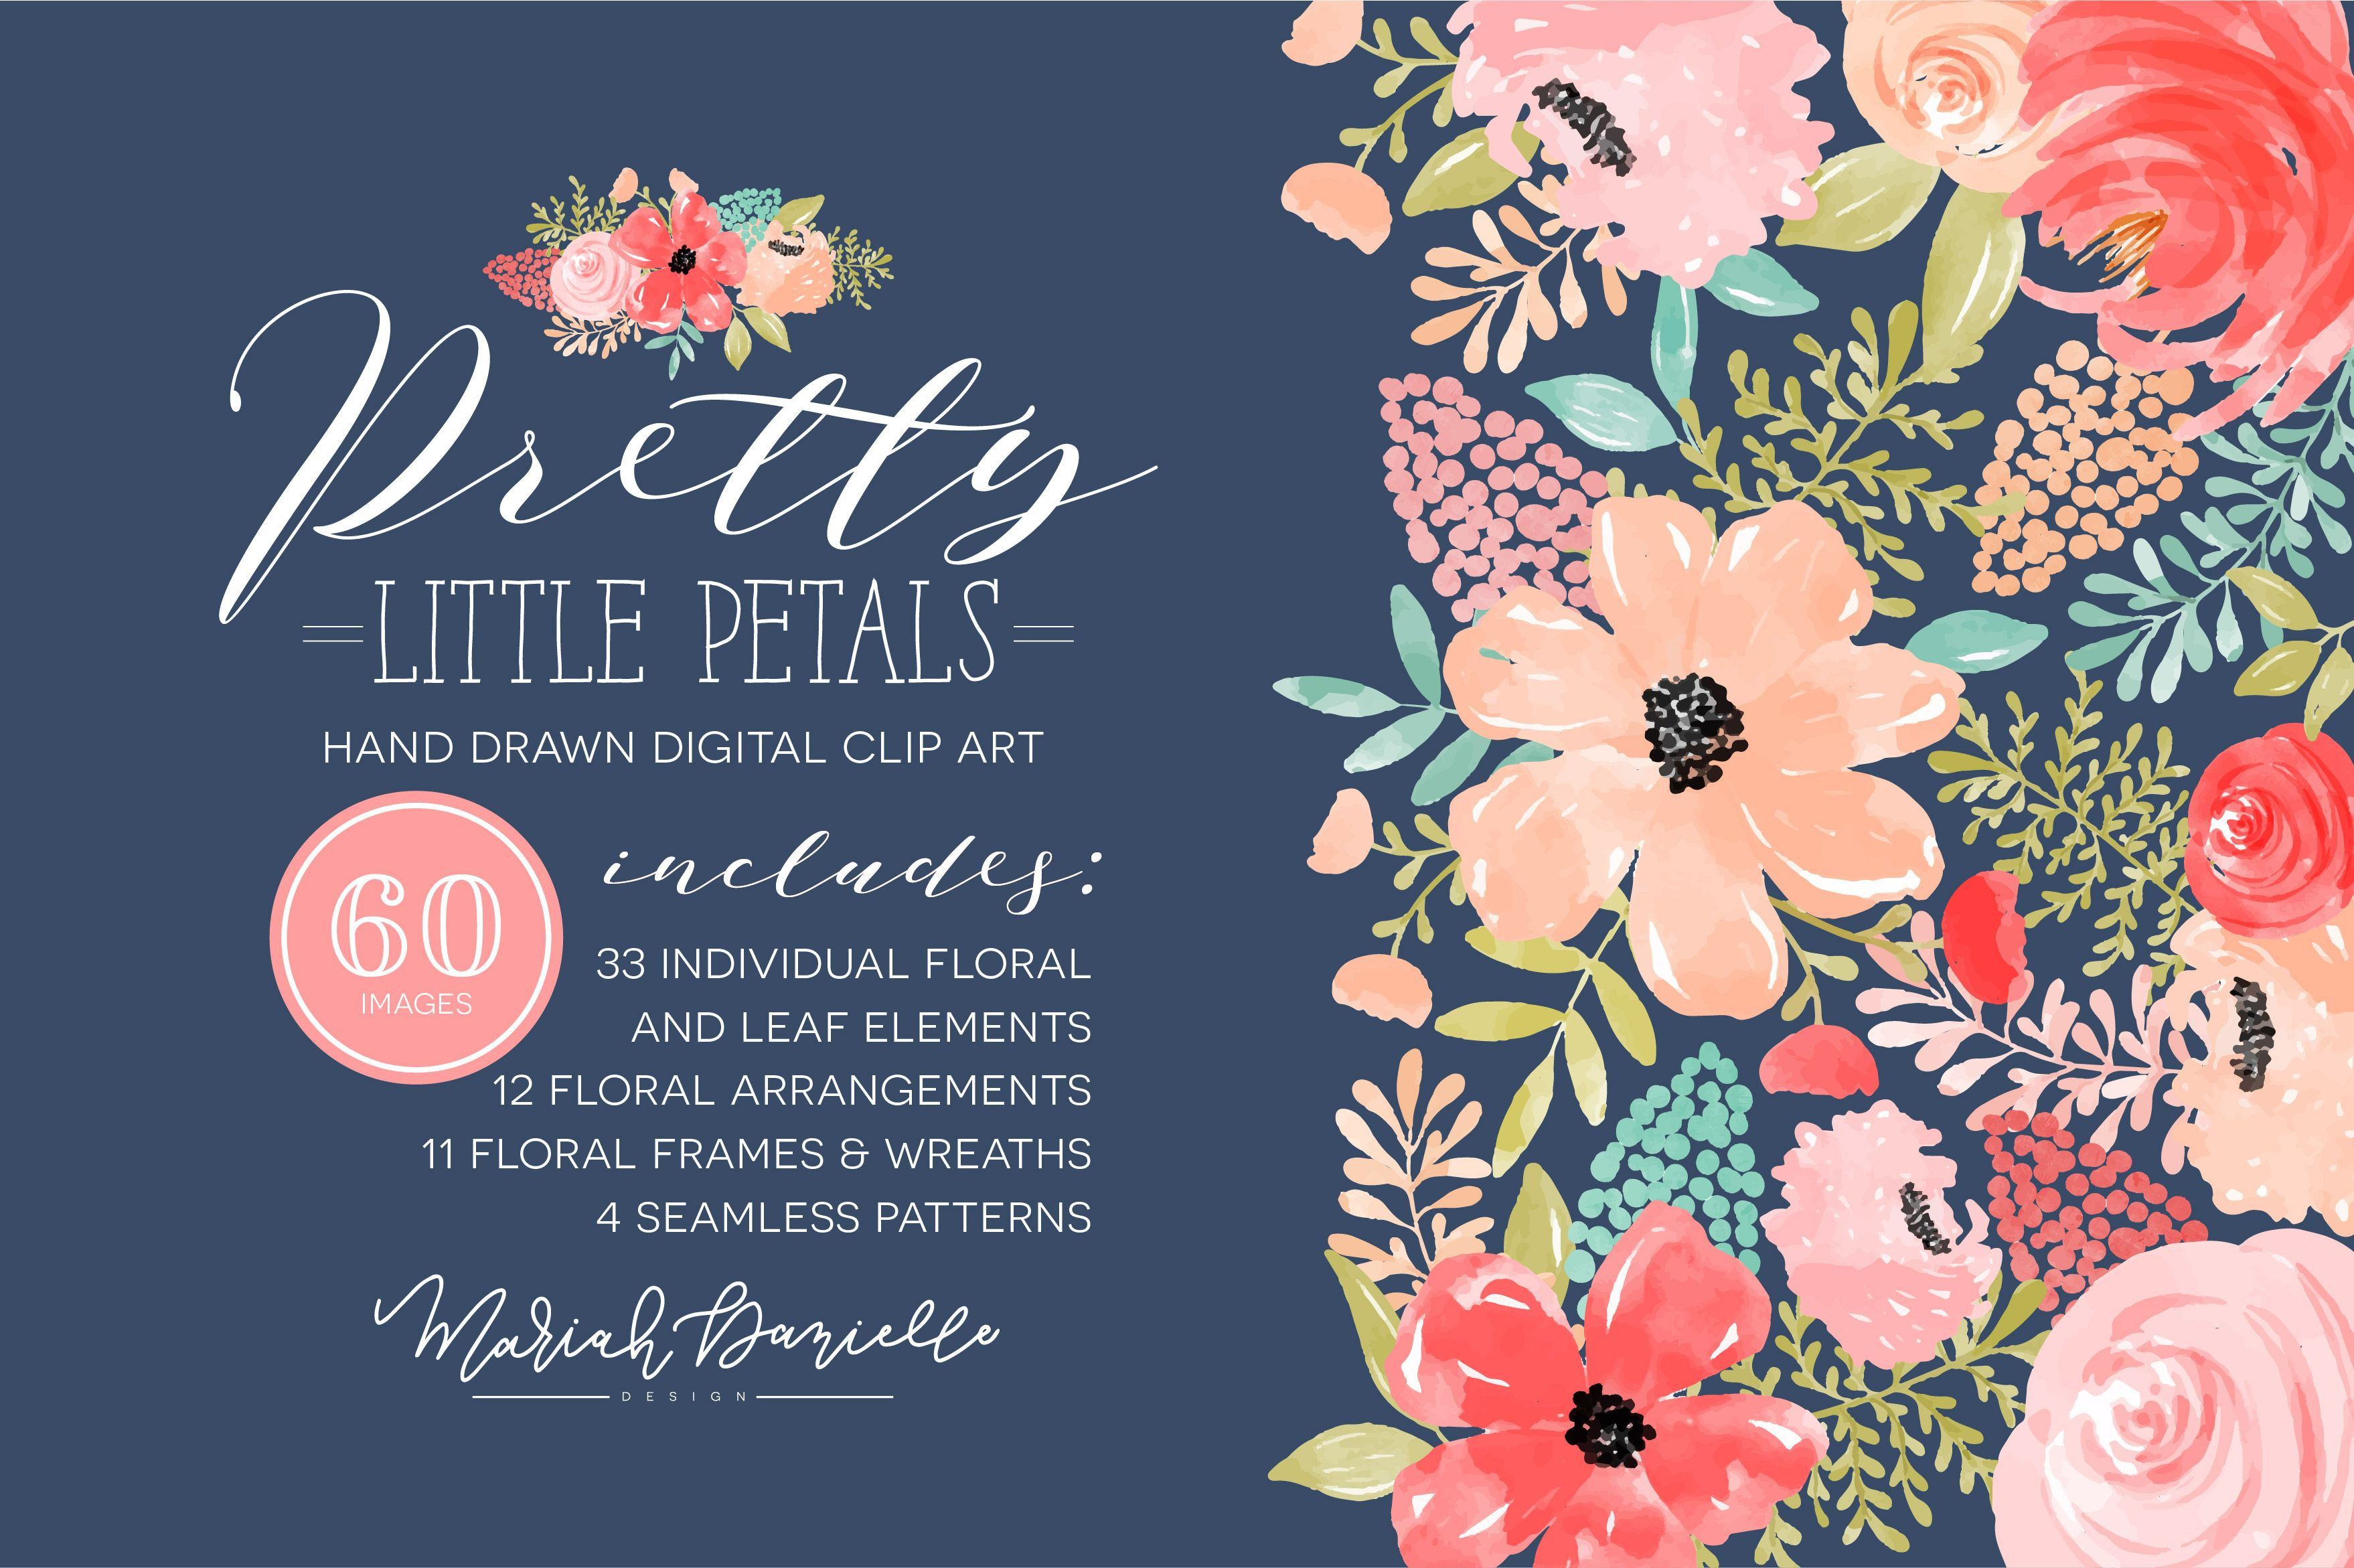 Floral watercolor clipart flower clipart flower bouquet clip art floral watercolor clipart flower clipart flower bouquet clip art pink peach flowers hand painted watercolor florals izmirmasajfo